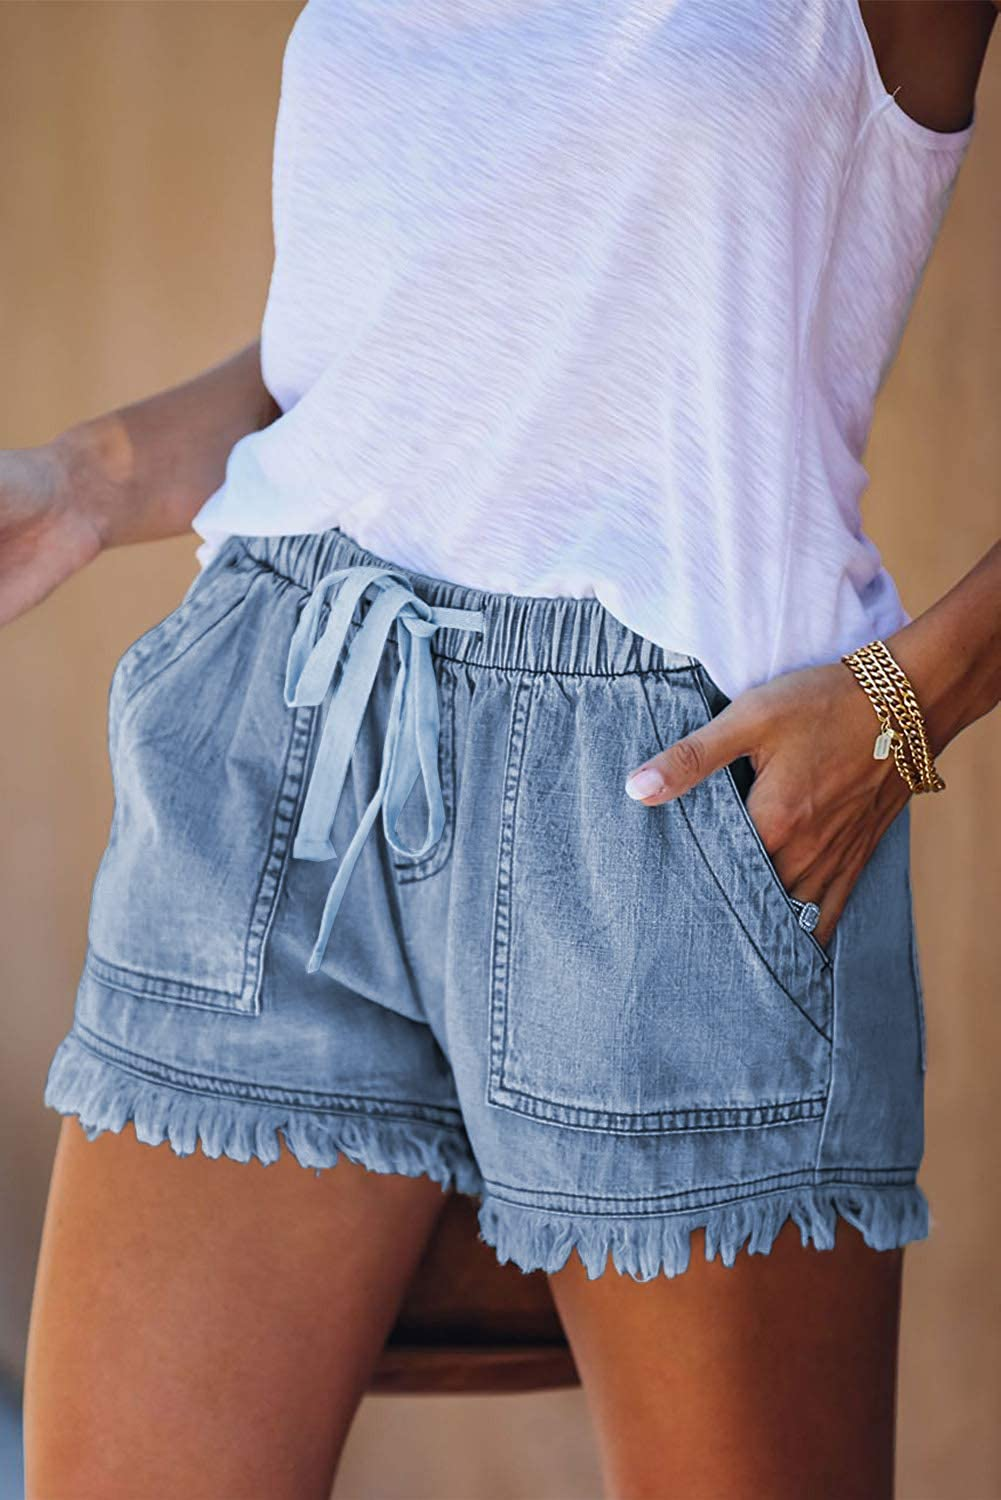 HVEPUO Womens Summer Linen Shorts Casual Elastic Waist Short Pants with Pockets.Order A Size Up!